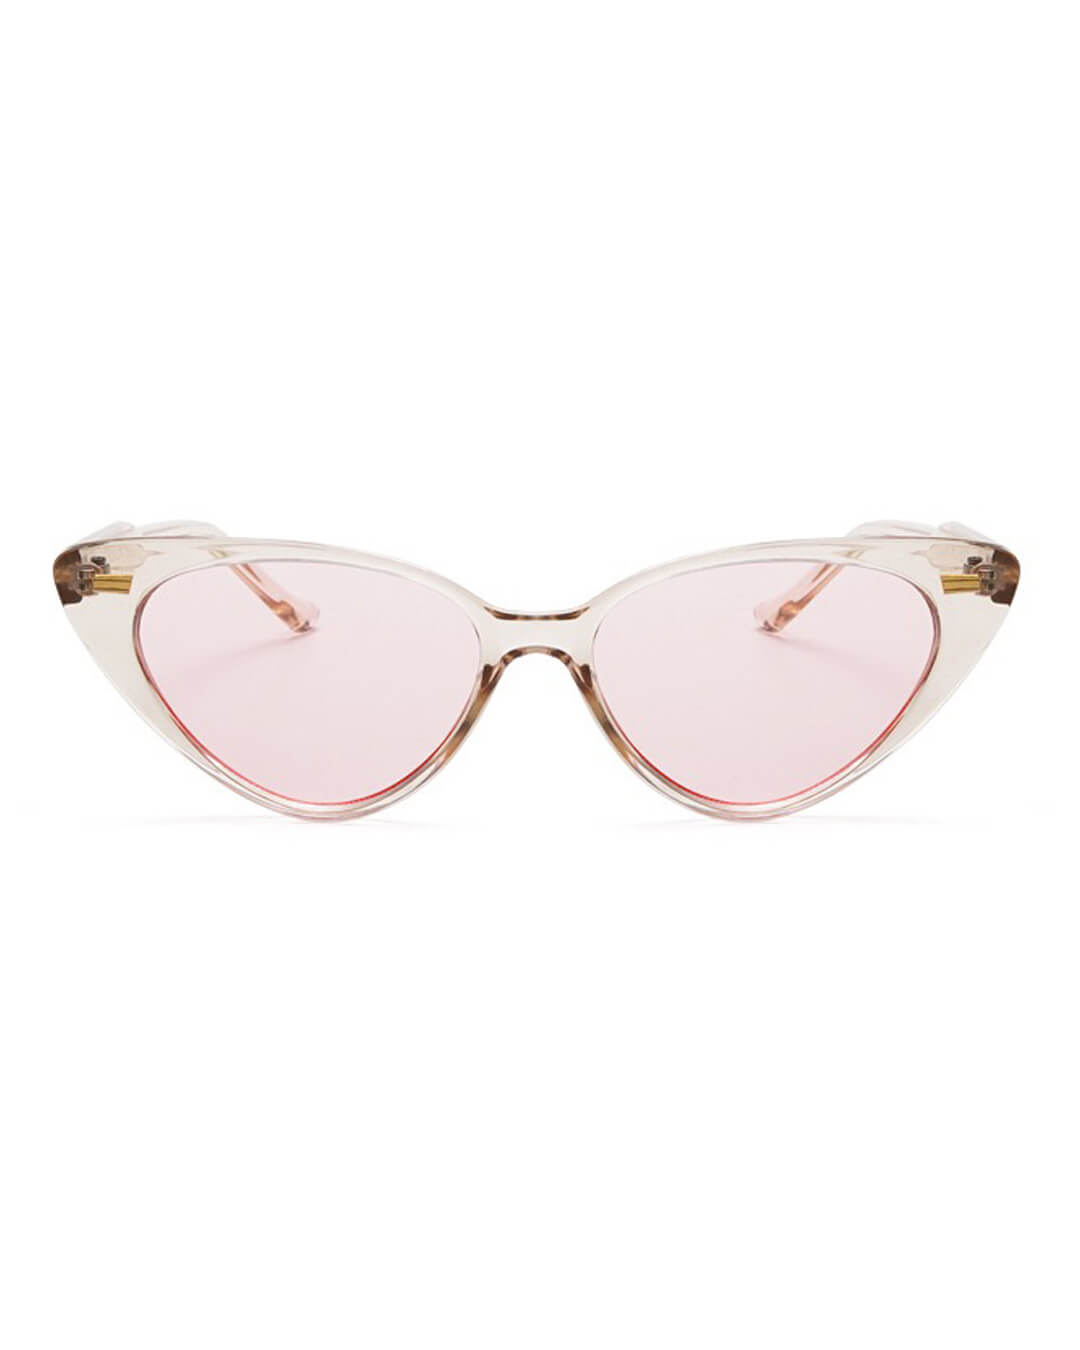 Jenner-Shades-Colour-Pink